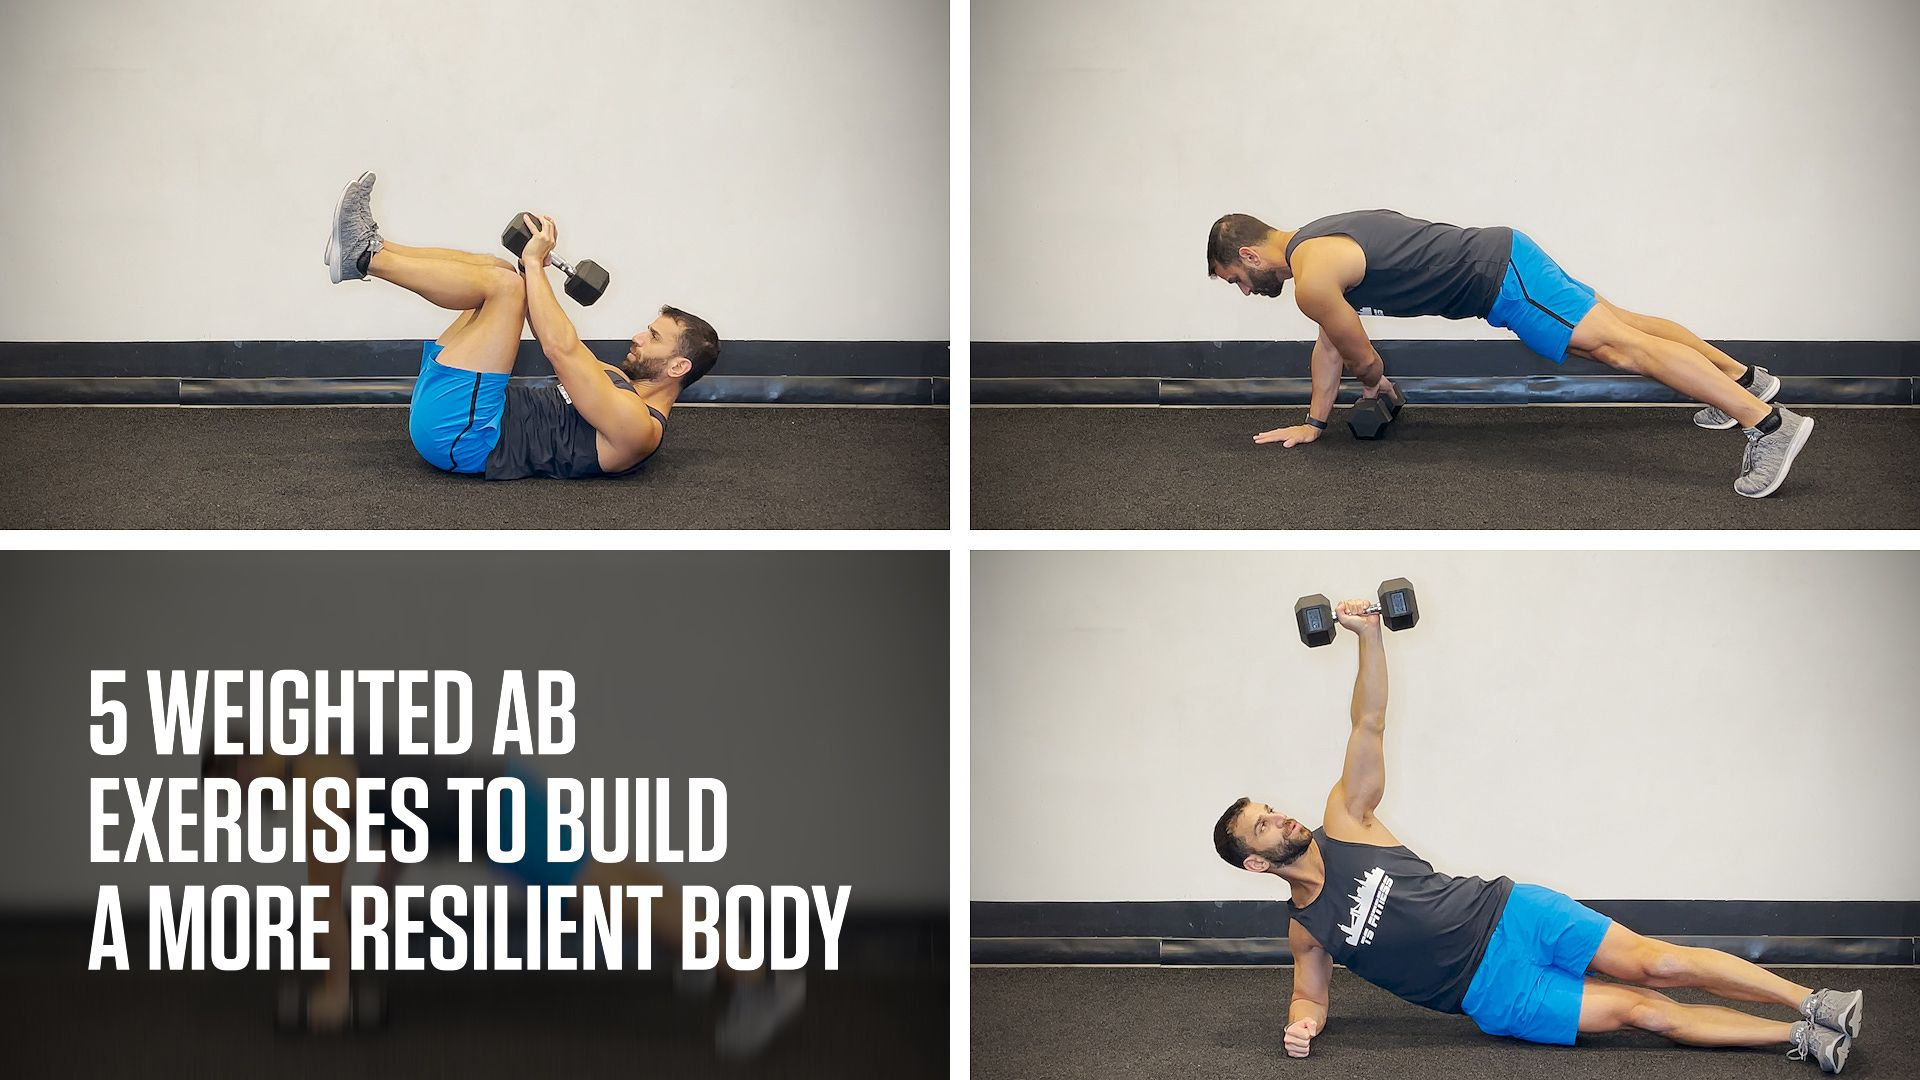 5 Weighted Ab Exercises to Build a More Resilient Body